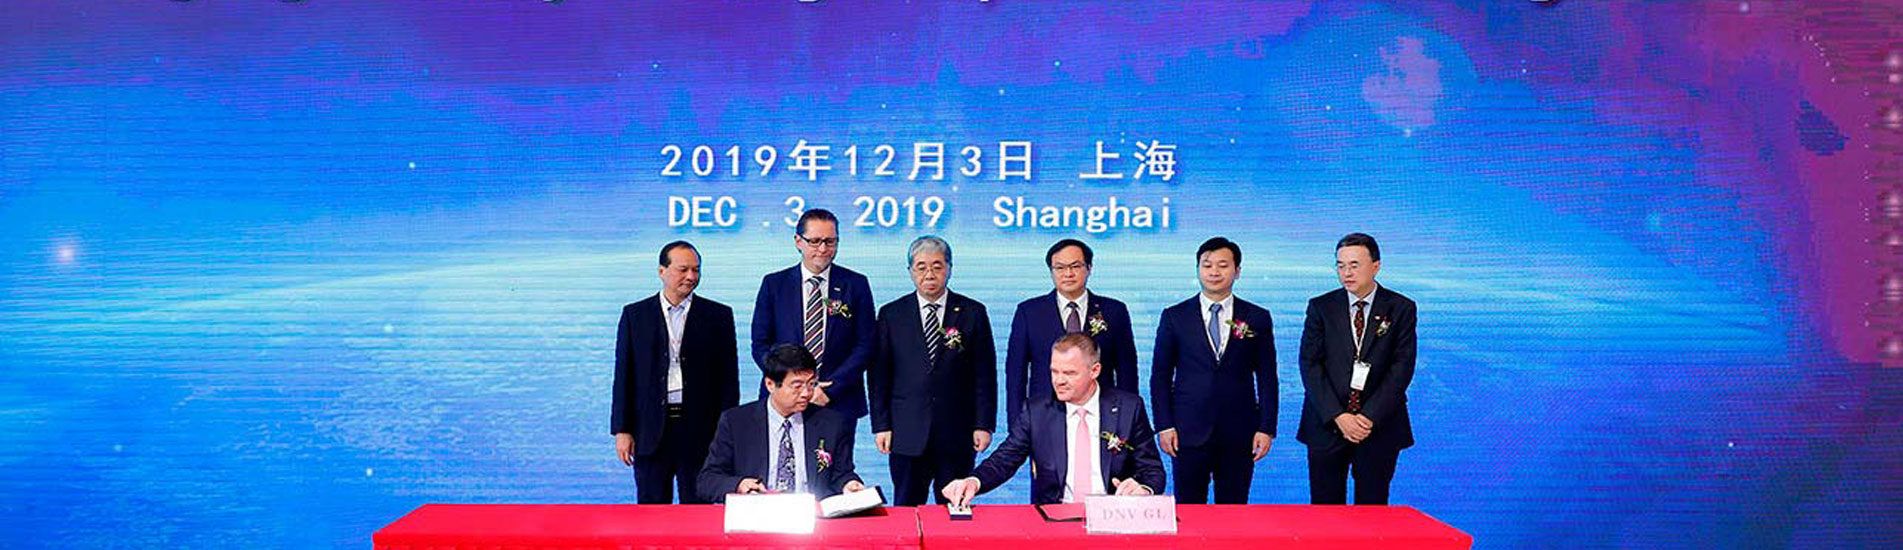 The strategic cooperation agreement was signed by Mr. Qian Jianping, Vice President of CSSC, and Norbert Kray, Regional Manager for Greater China at DNV GL – Maritime. The signing ceremony at Marintec trade fair in Shanghai last week was witnessed by Remi Eriksen, Group President & CEO of DNV GL, CSSC Chairman Mr. Lei Fanpei, and CSSC Group President Mr. Yang Jincheng.